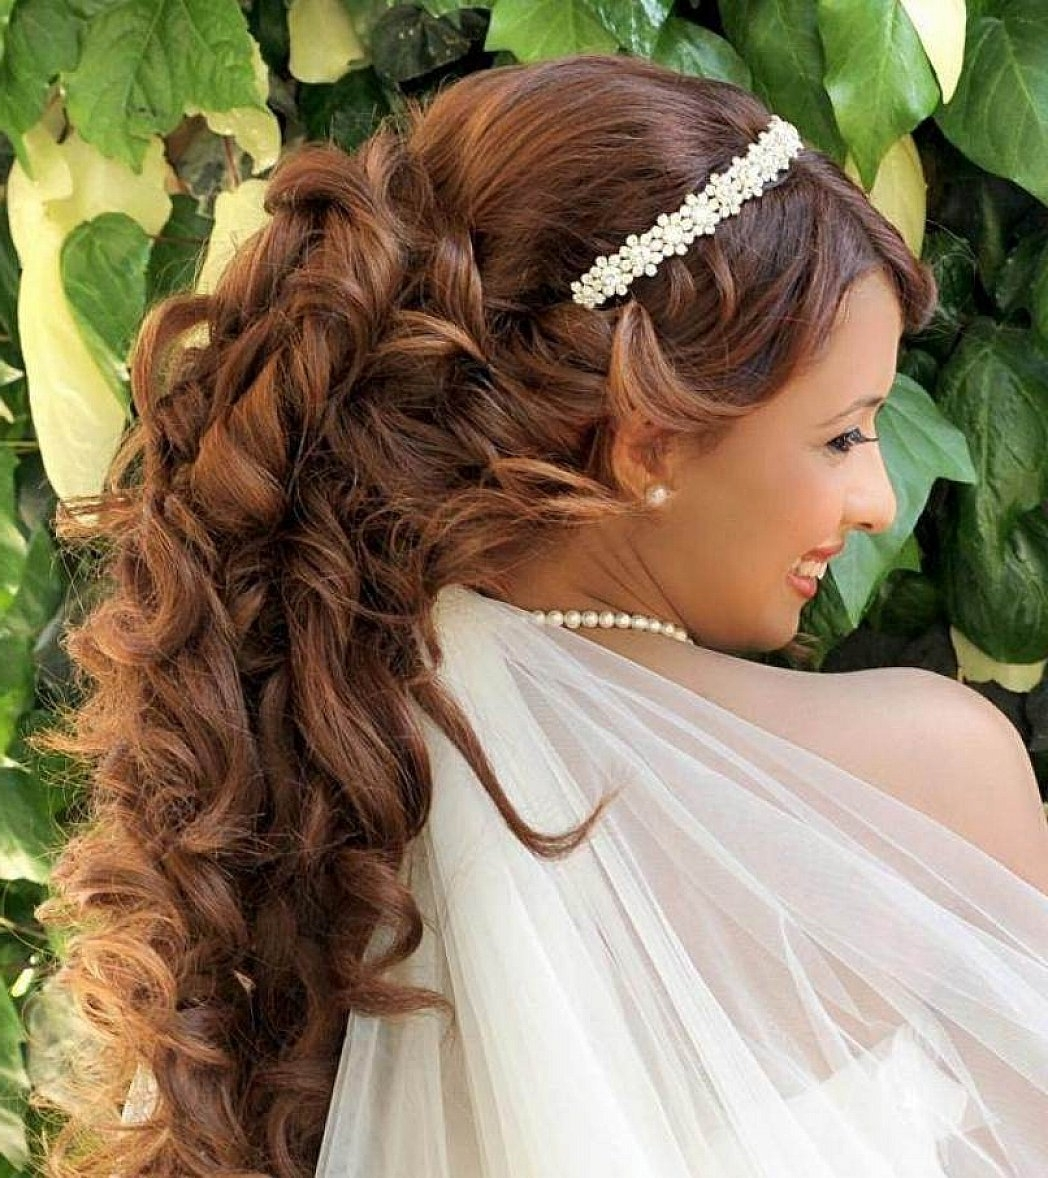 2018 Wedding Hairstyles For Long Hair Down With Tiara Intended For Wedding Hairstyles For Long Hair Half Up With Tiara (10) (View 3 of 15)